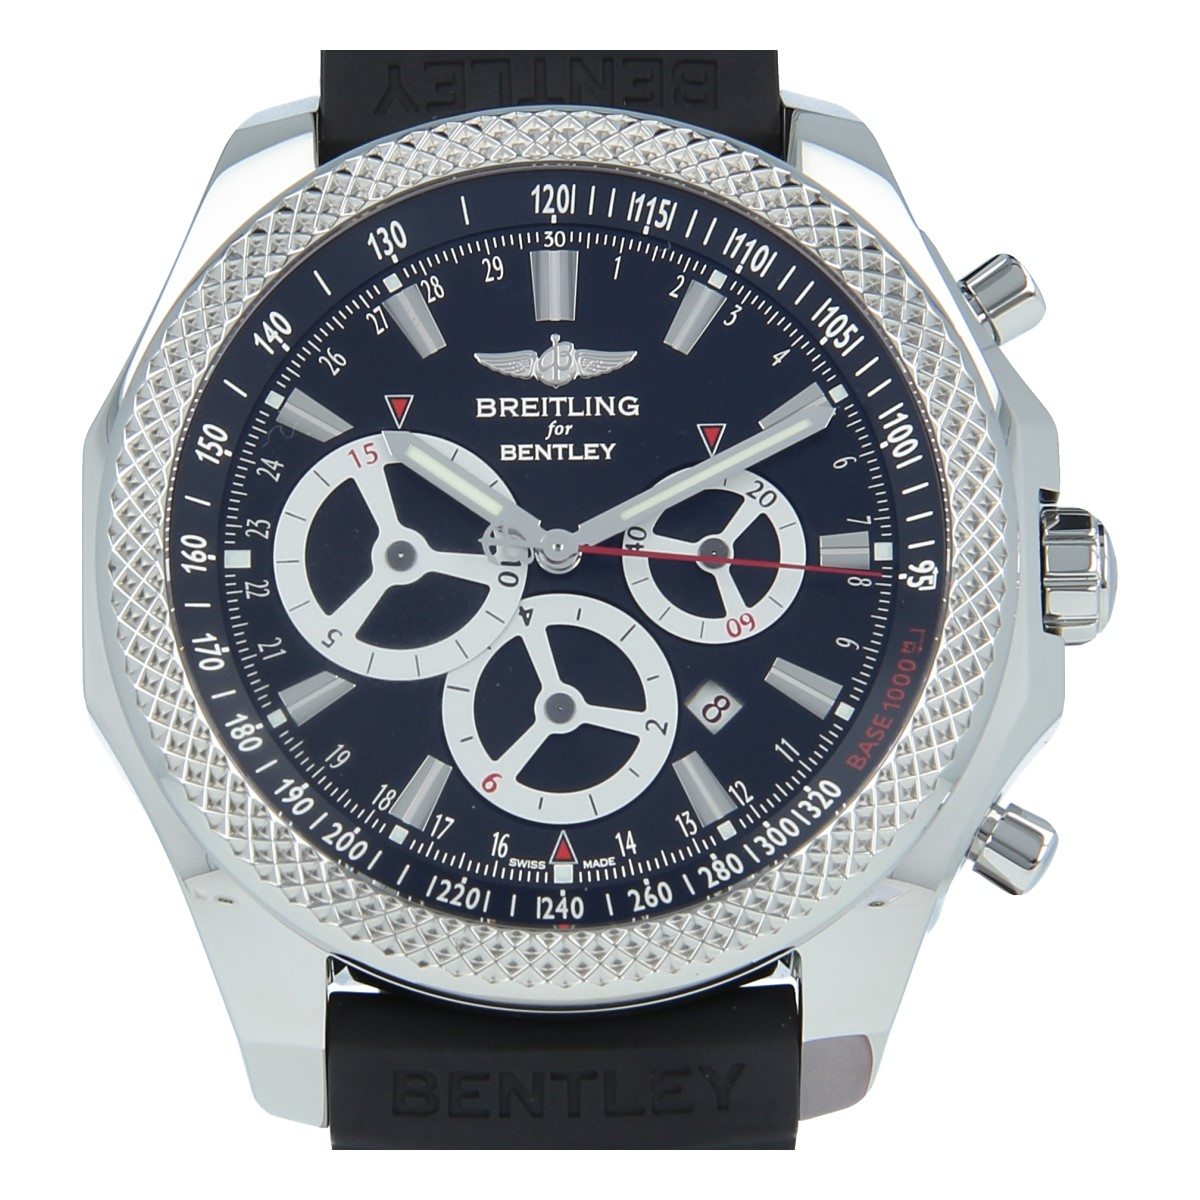 Breitling For Bentley Infos Price History: Breitling For Bentley Barnato Racing 49mm *Brand-new